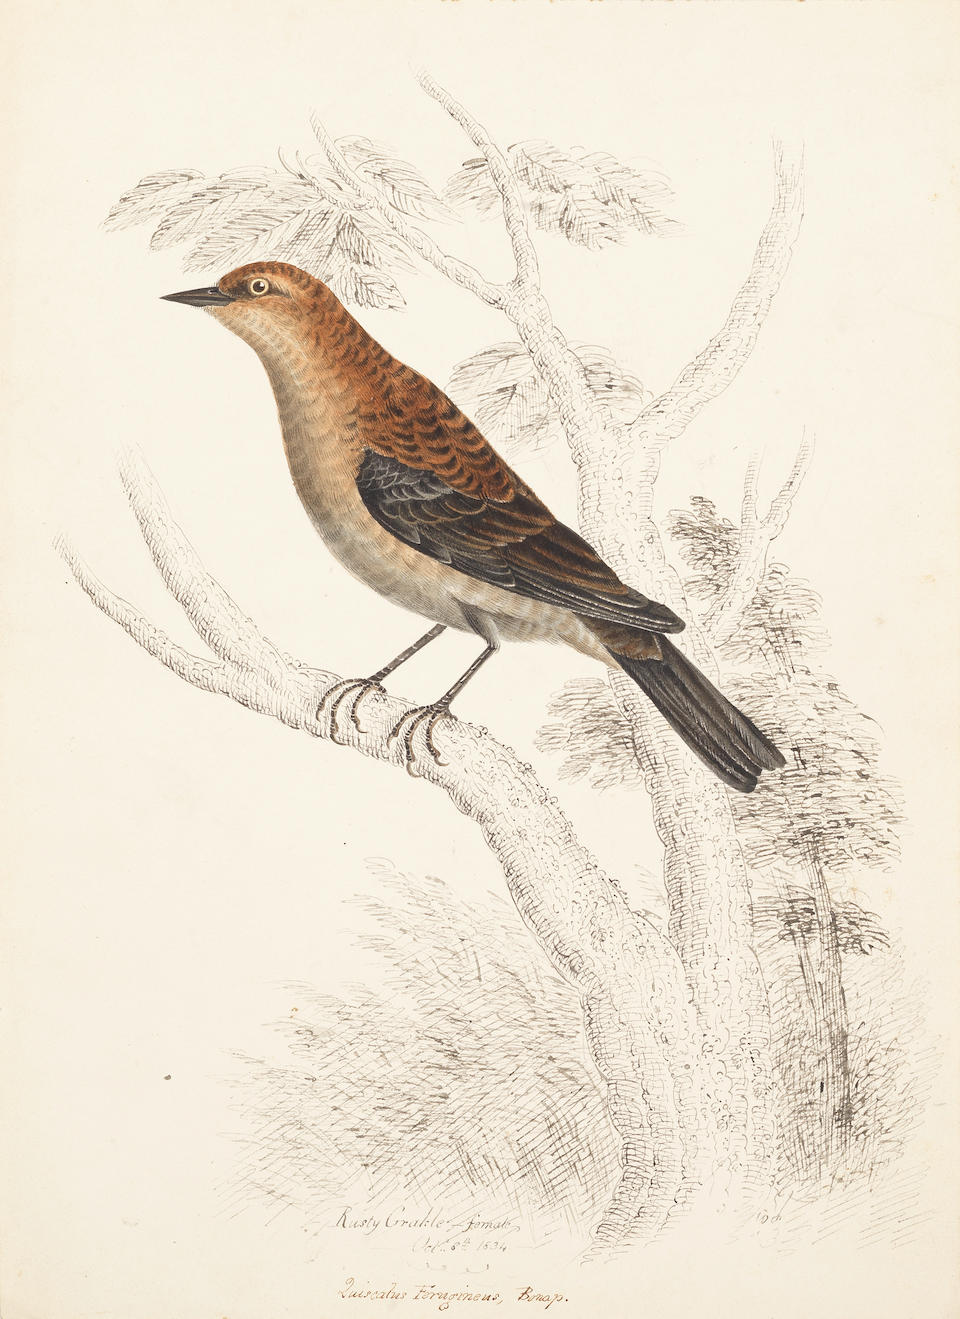 William Pope (British/Canadian, 1811-1902) An extensive archive of fifty-four Canadian animal studies, comprised of forty ornithological studies and fourteen ichthyological studies 50 x 33.8cm (19 3/4 x 13 1/4in) and smaller. (54) unframed